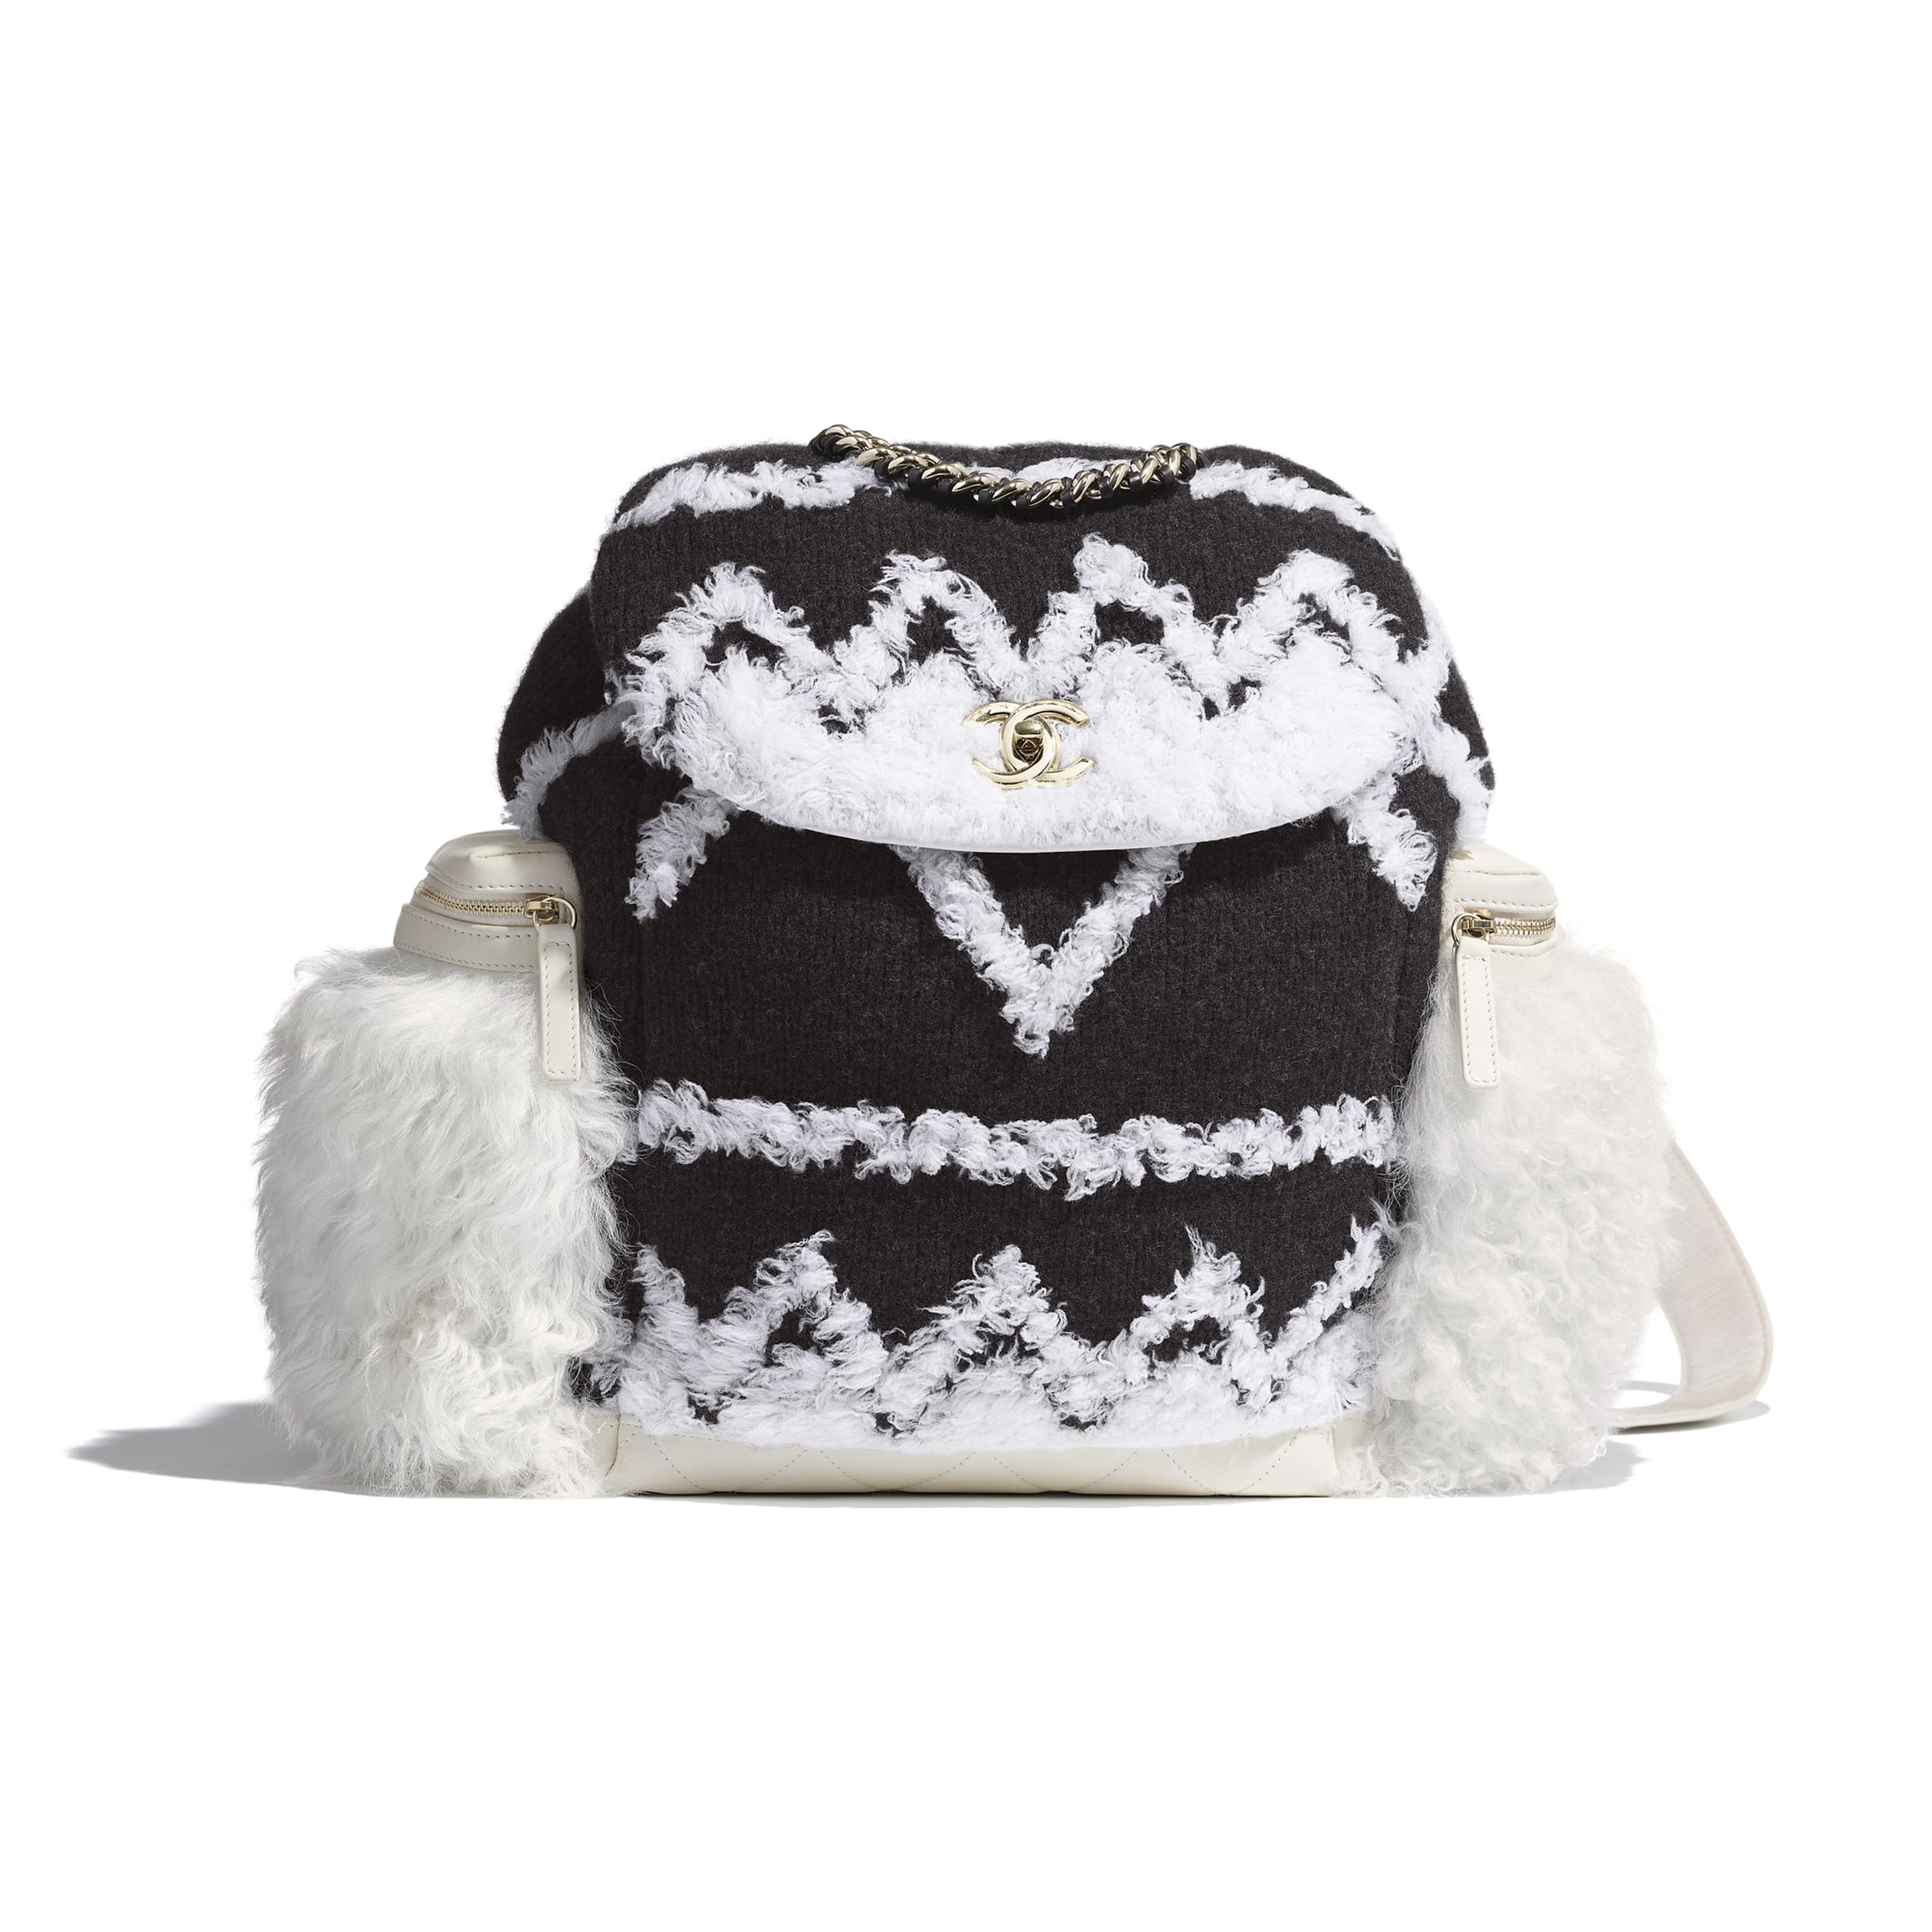 Large Backpack - White & Black - Wool, Shearling Sheepskin & Gold-Tone Metal - Default view - see standard sized version